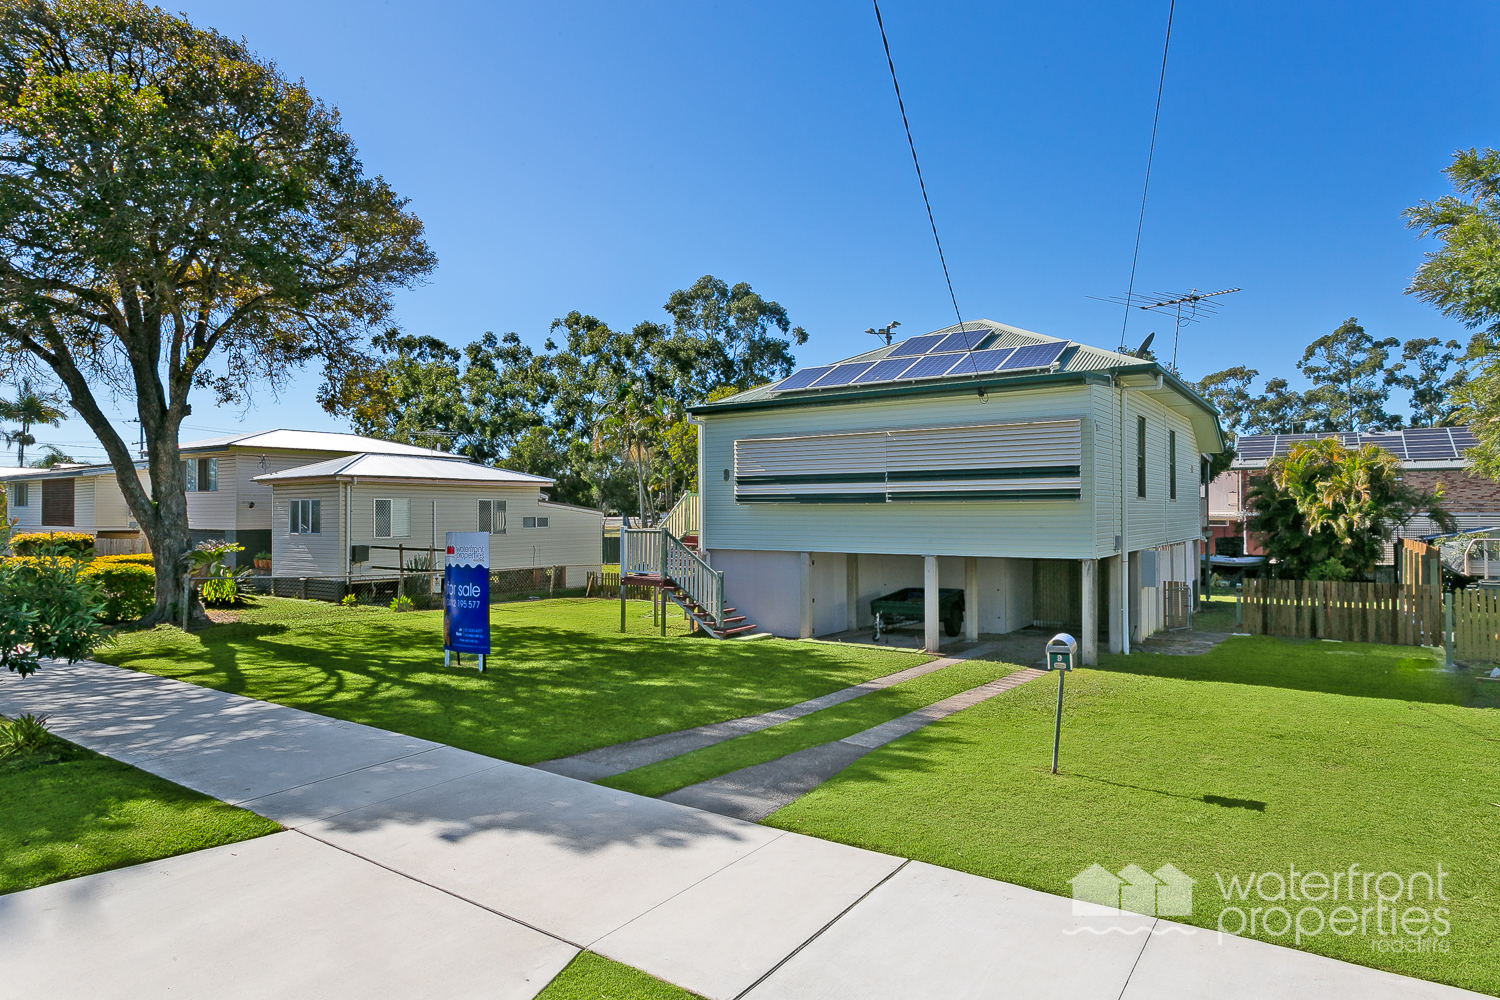 Redcliffe Entry Level Homes Snapped Up- with not enough to go around!